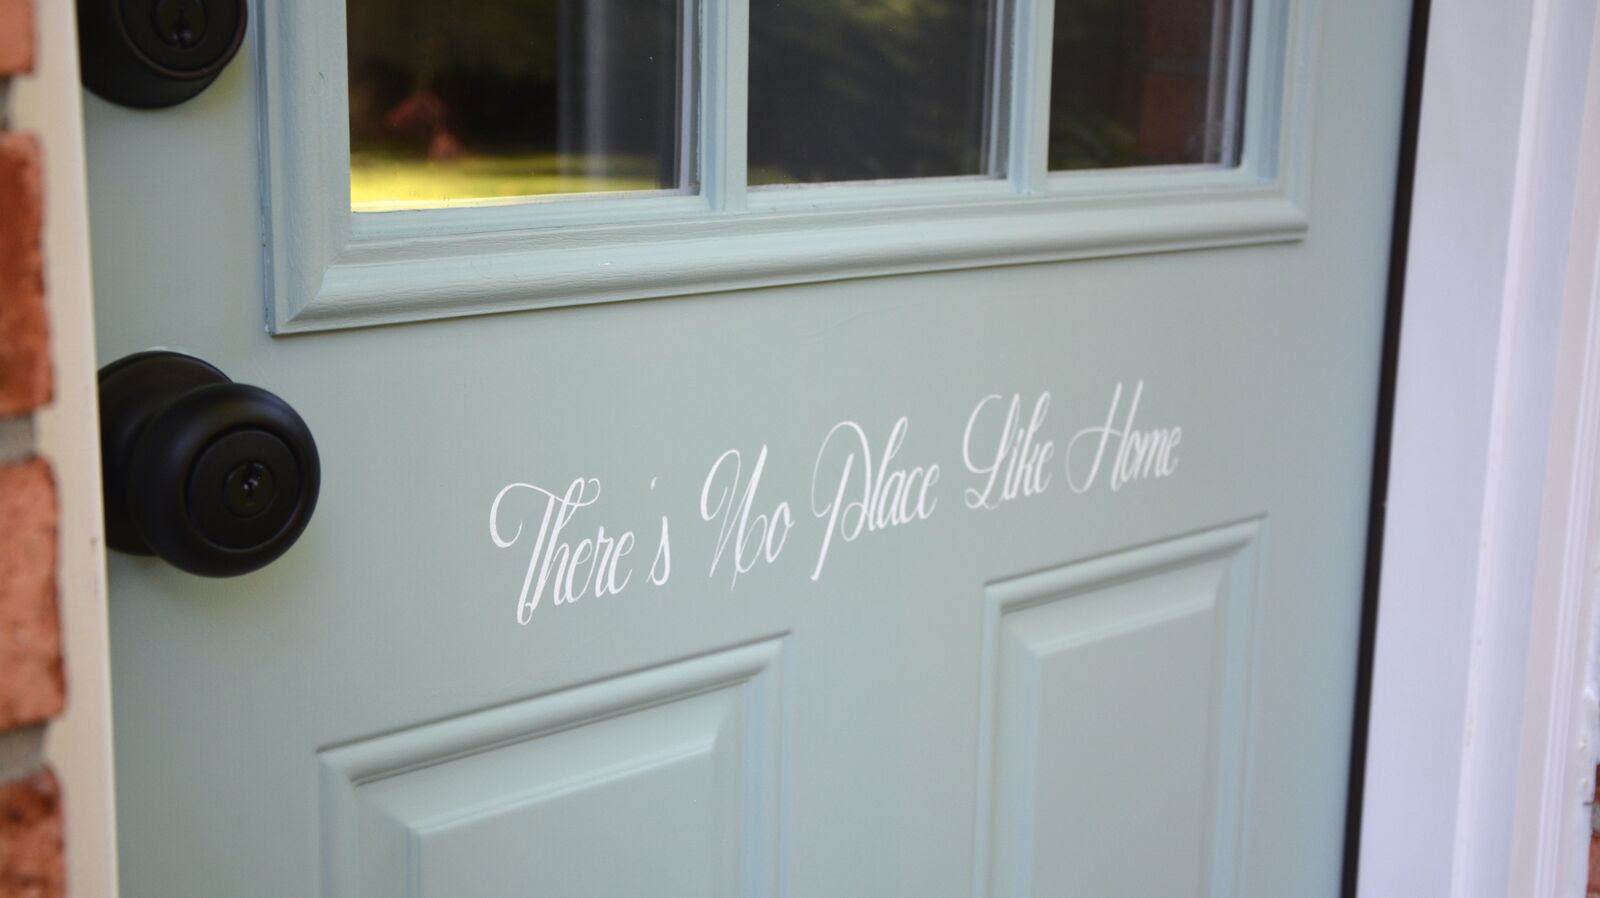 How to Paint and Stencil a Door - AFTER - Stenciled Door